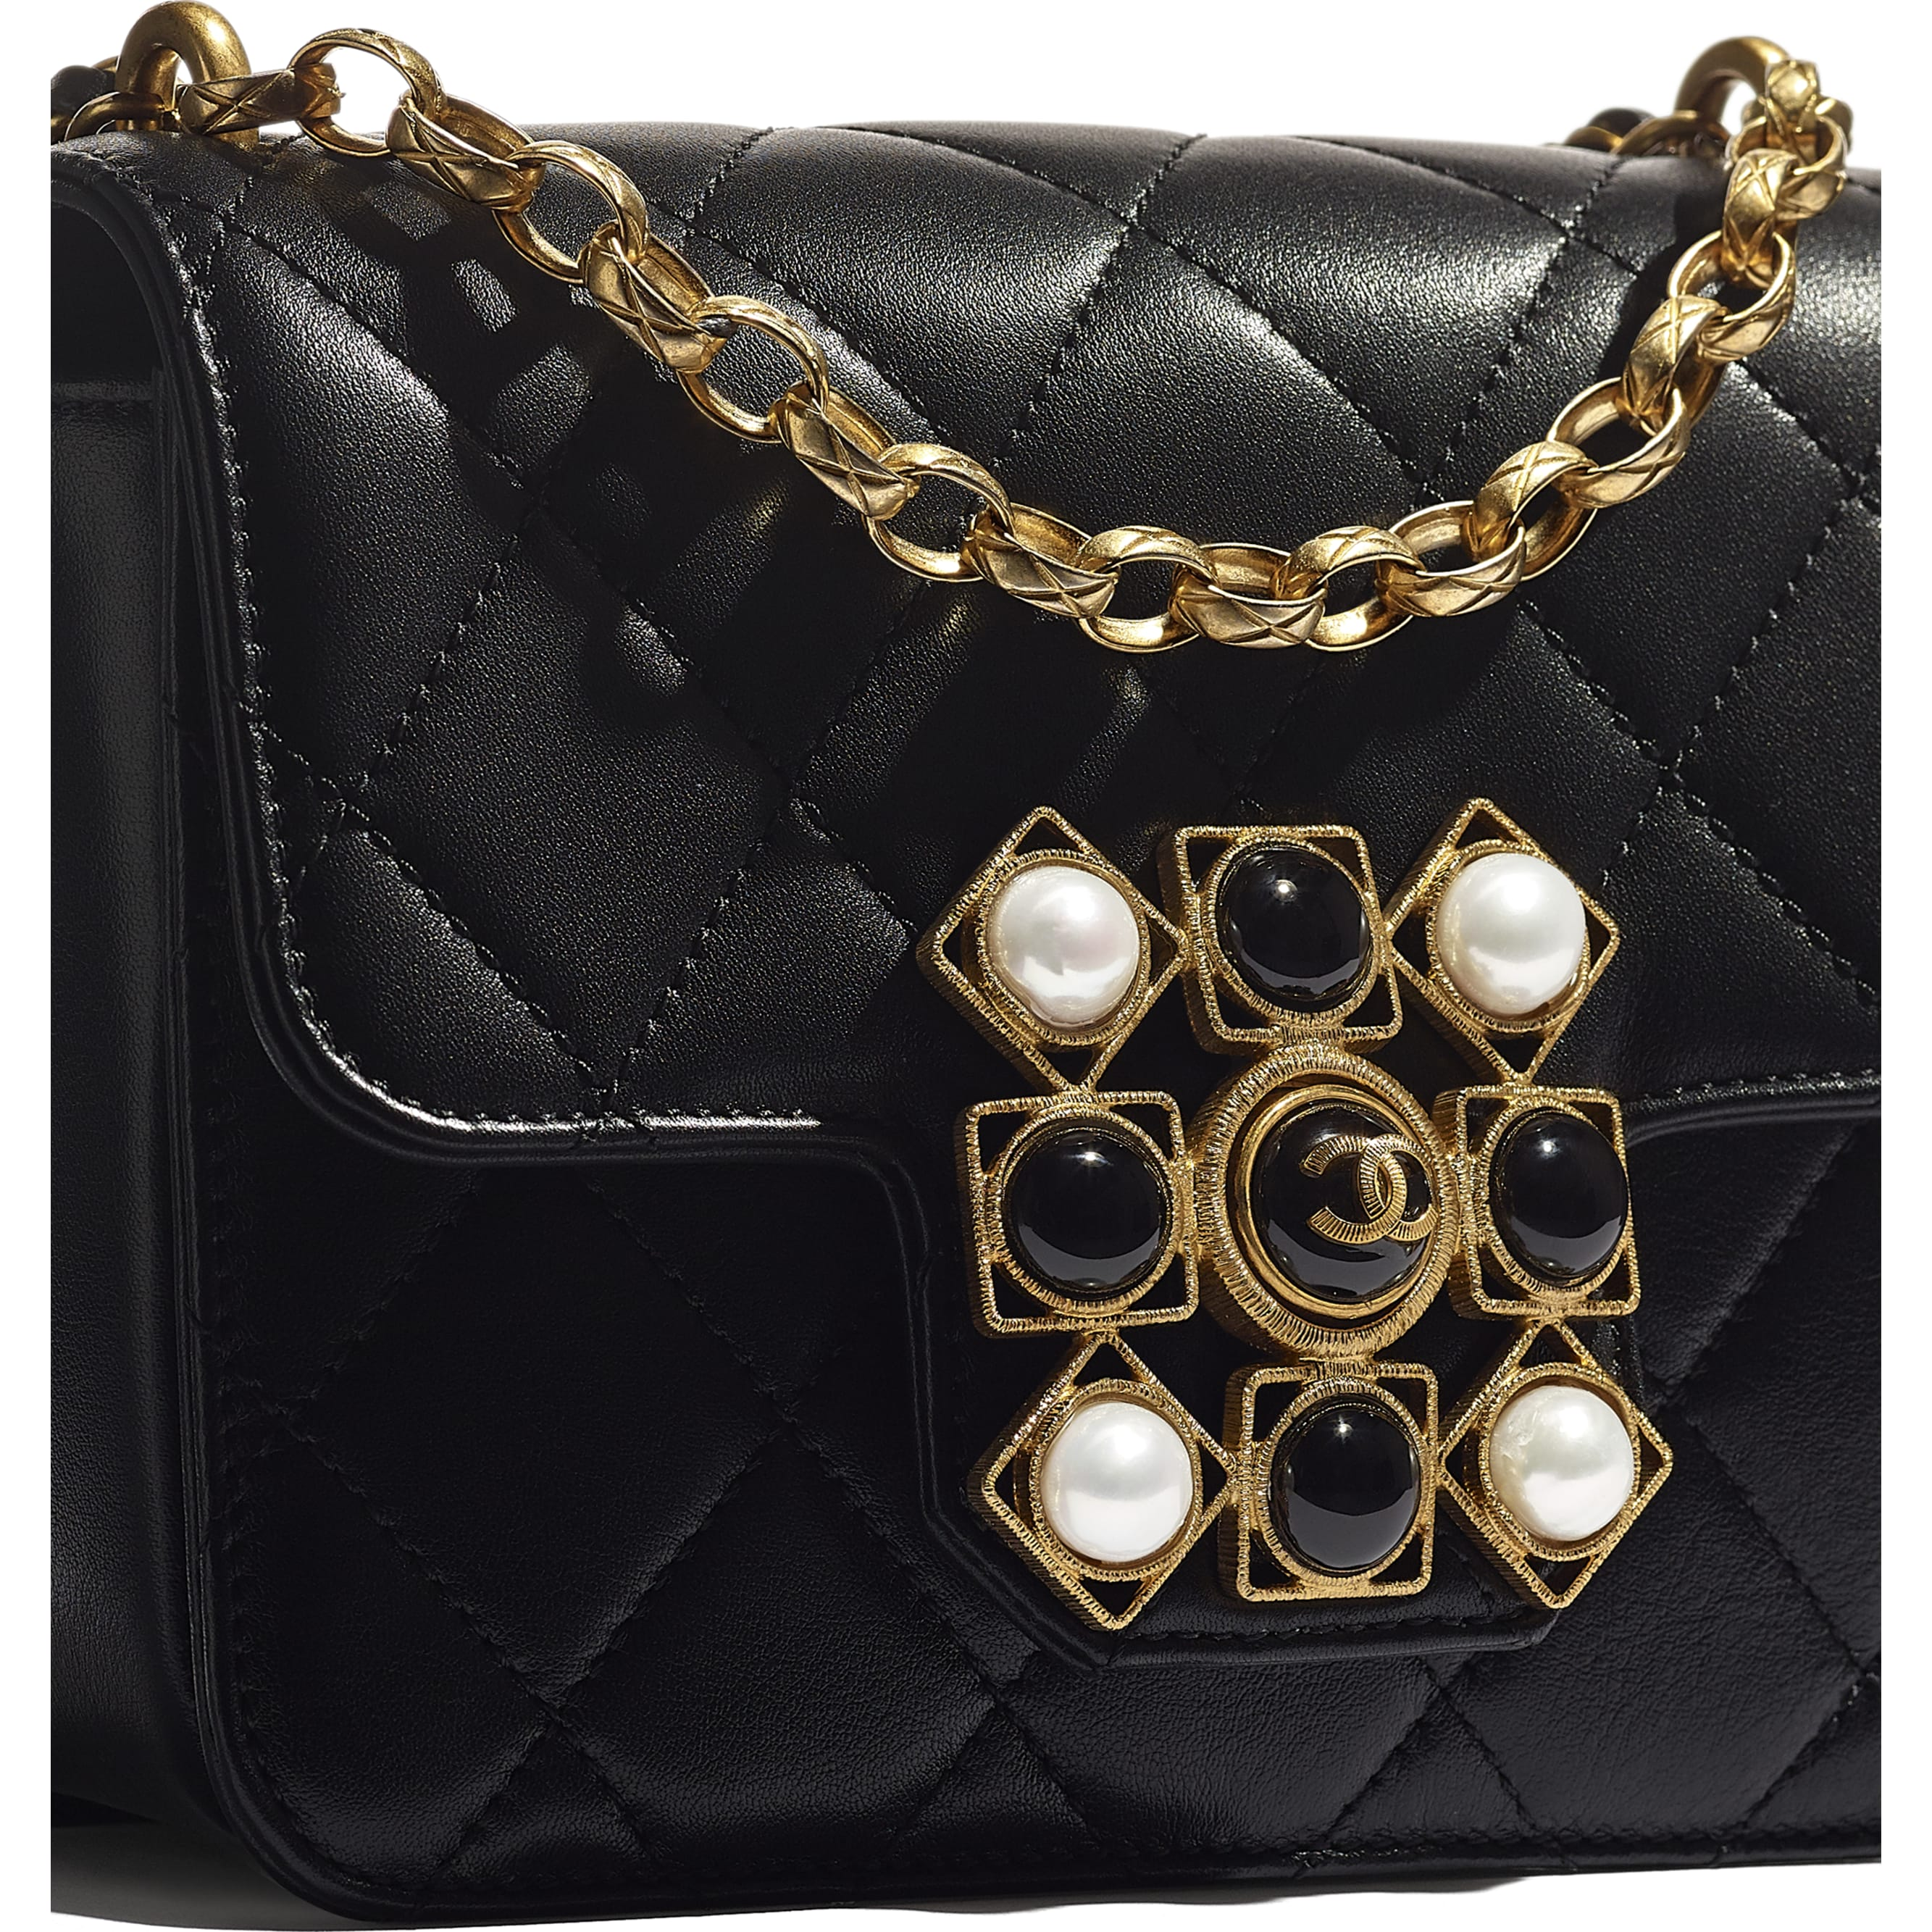 Flap Bag - Black - Calfskin, Onyx, Pearls & Gold-Tone Metal - CHANEL - Extra view - see standard sized version